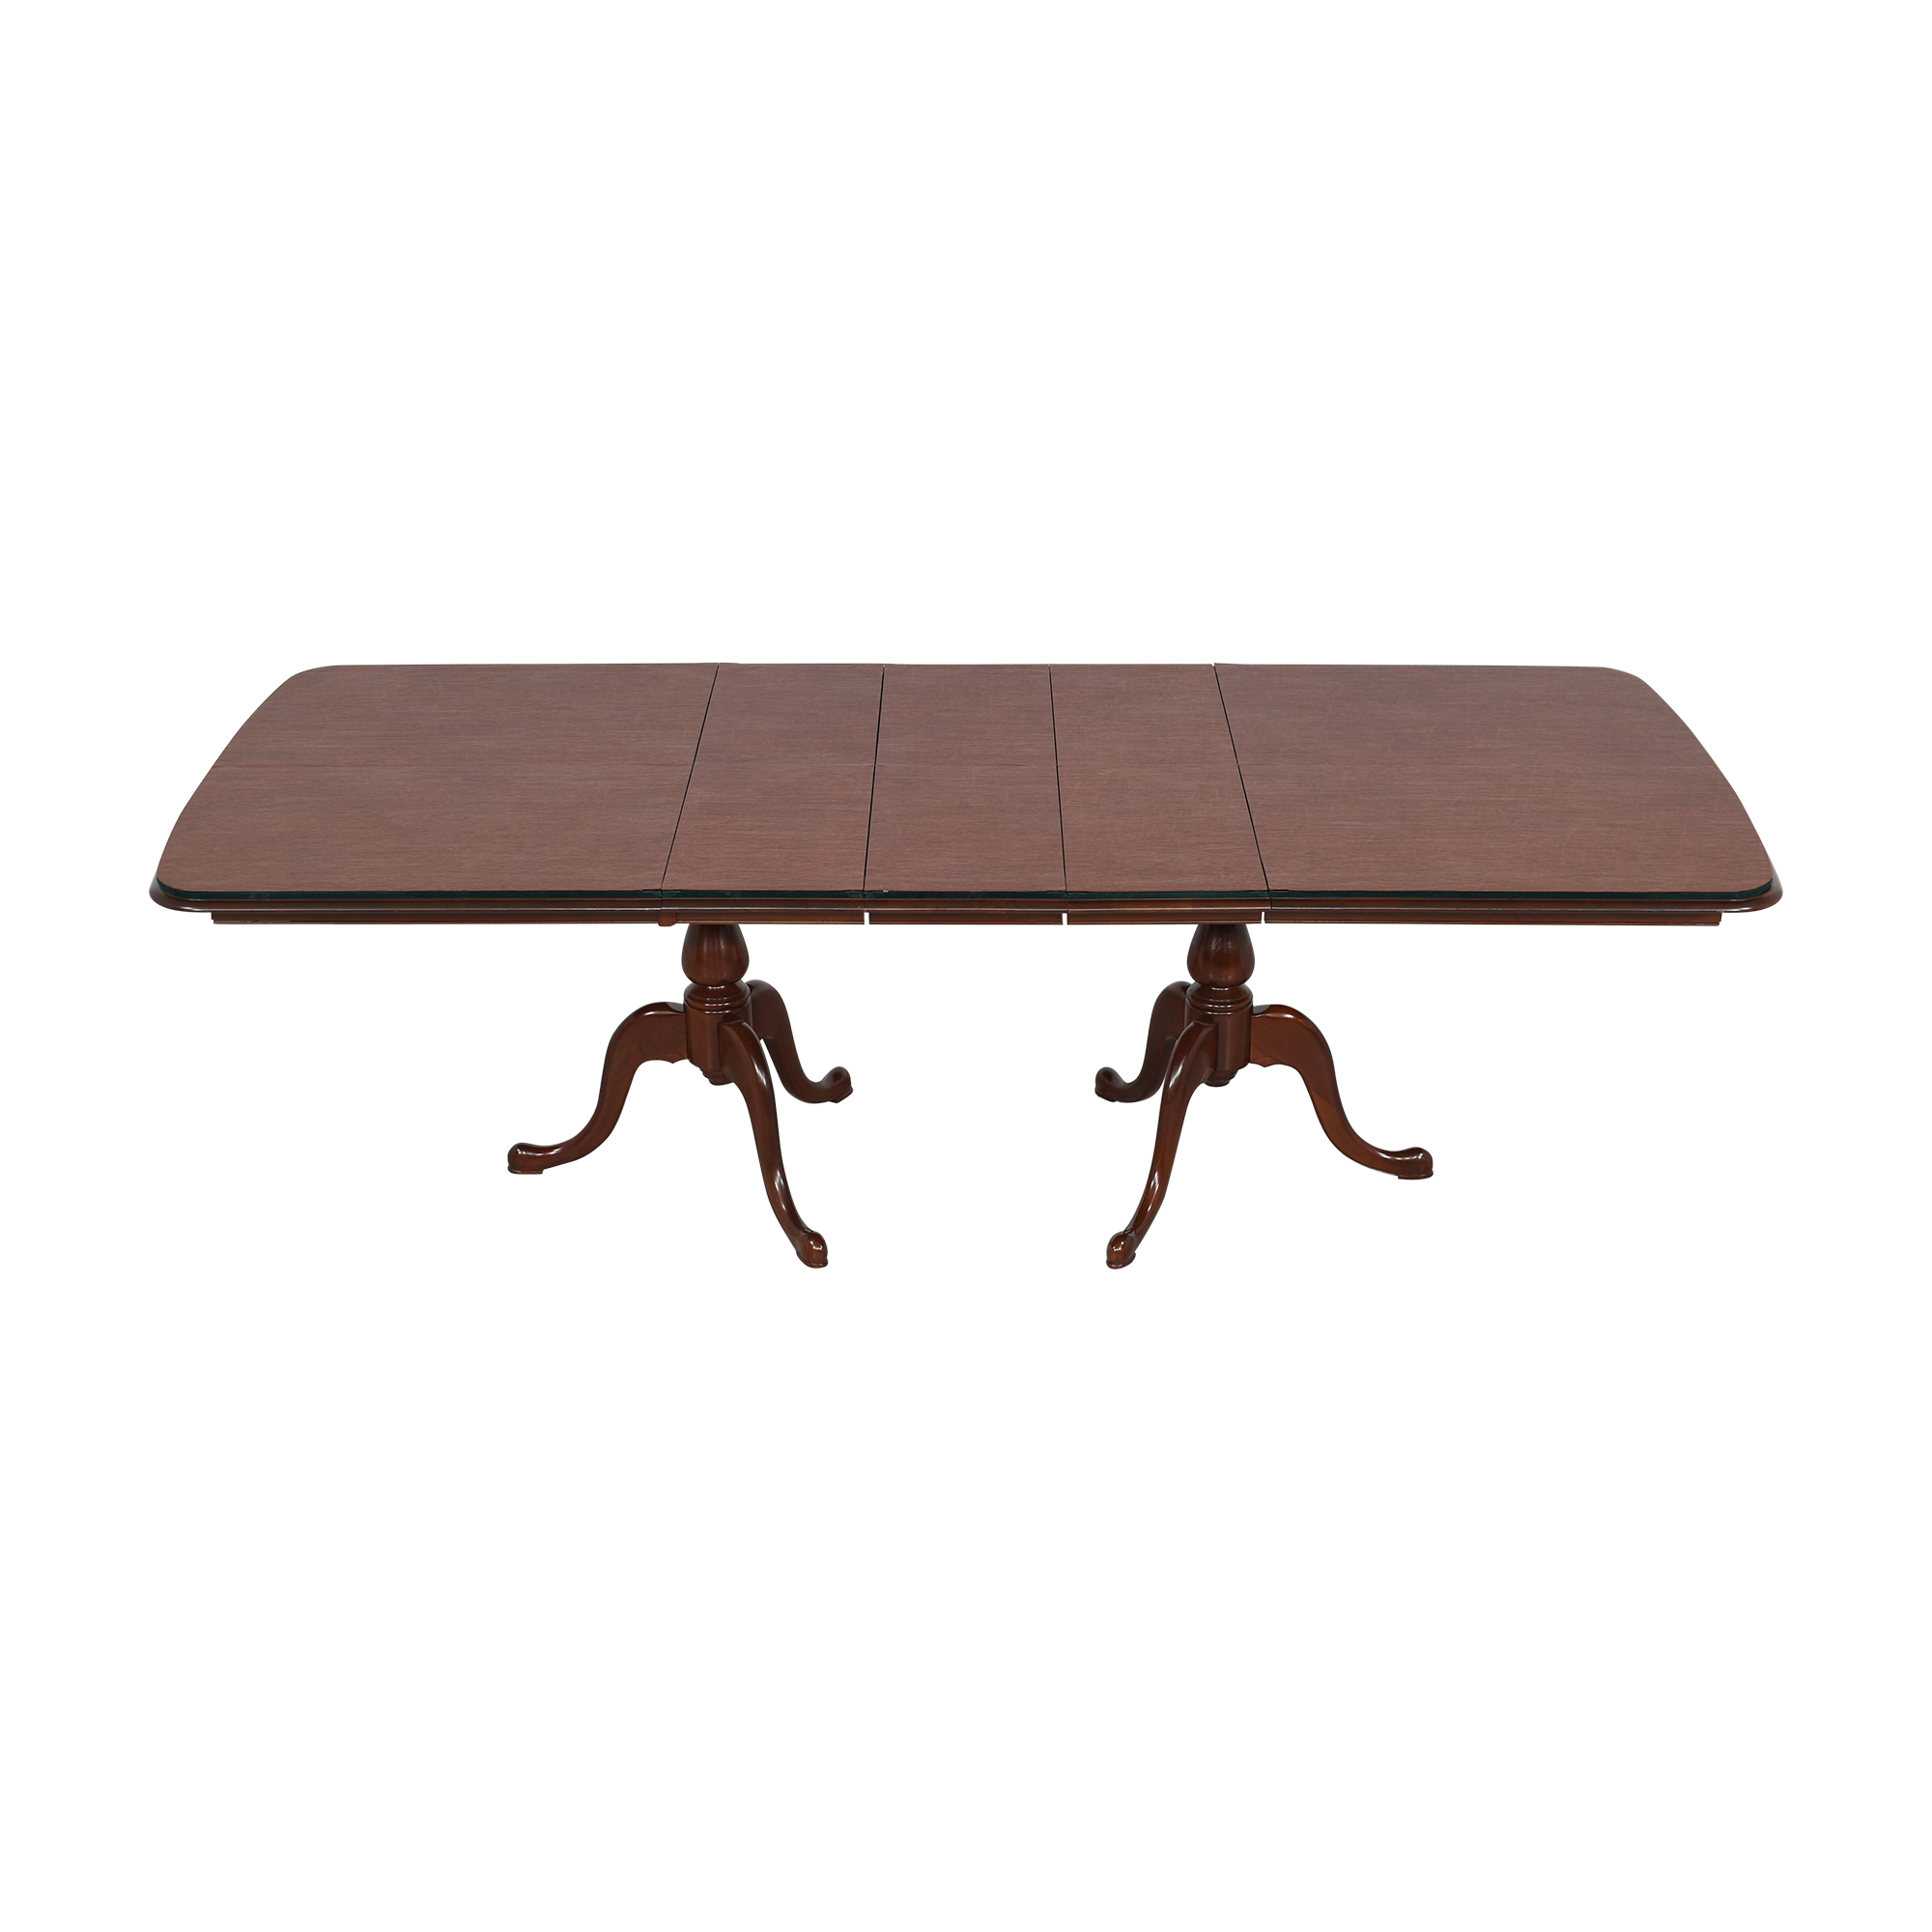 The Colonial Furniture Company The Colonial Furniture Company Extendable Dining Table price